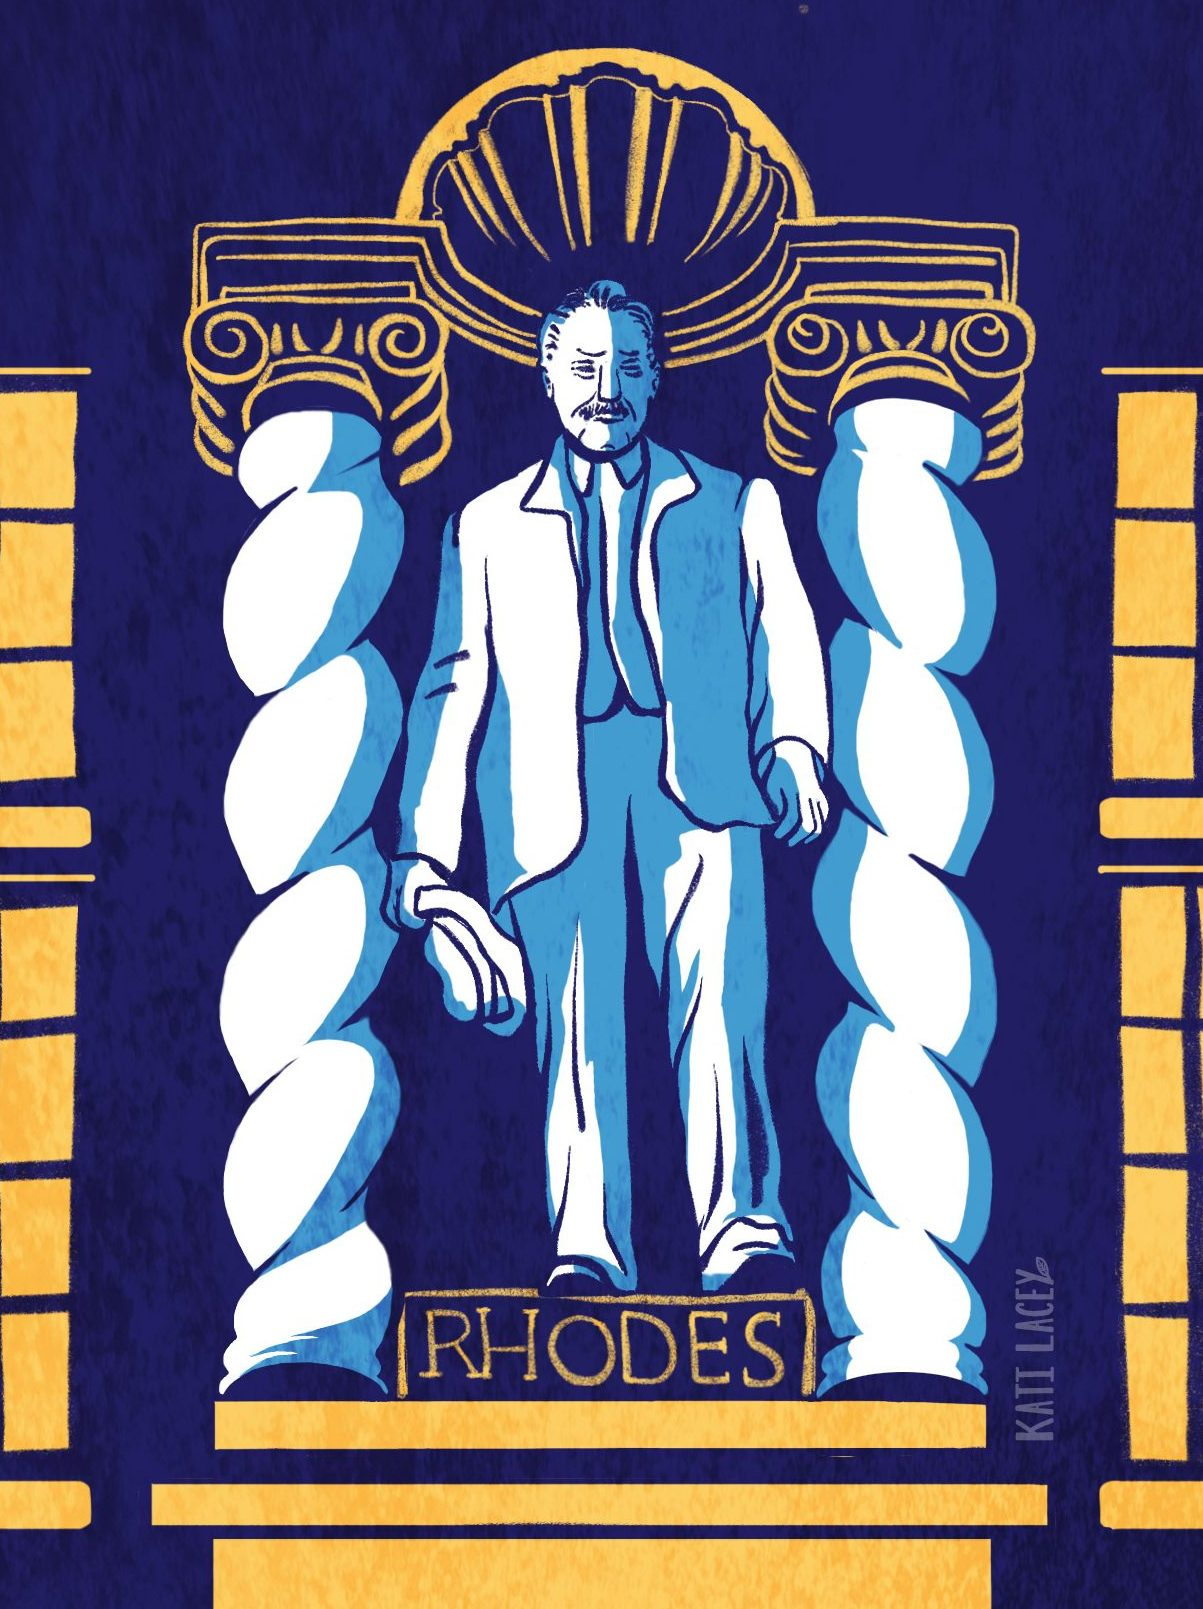 Illustration of the Rhodes statue in Oxford by Kati Lacey.